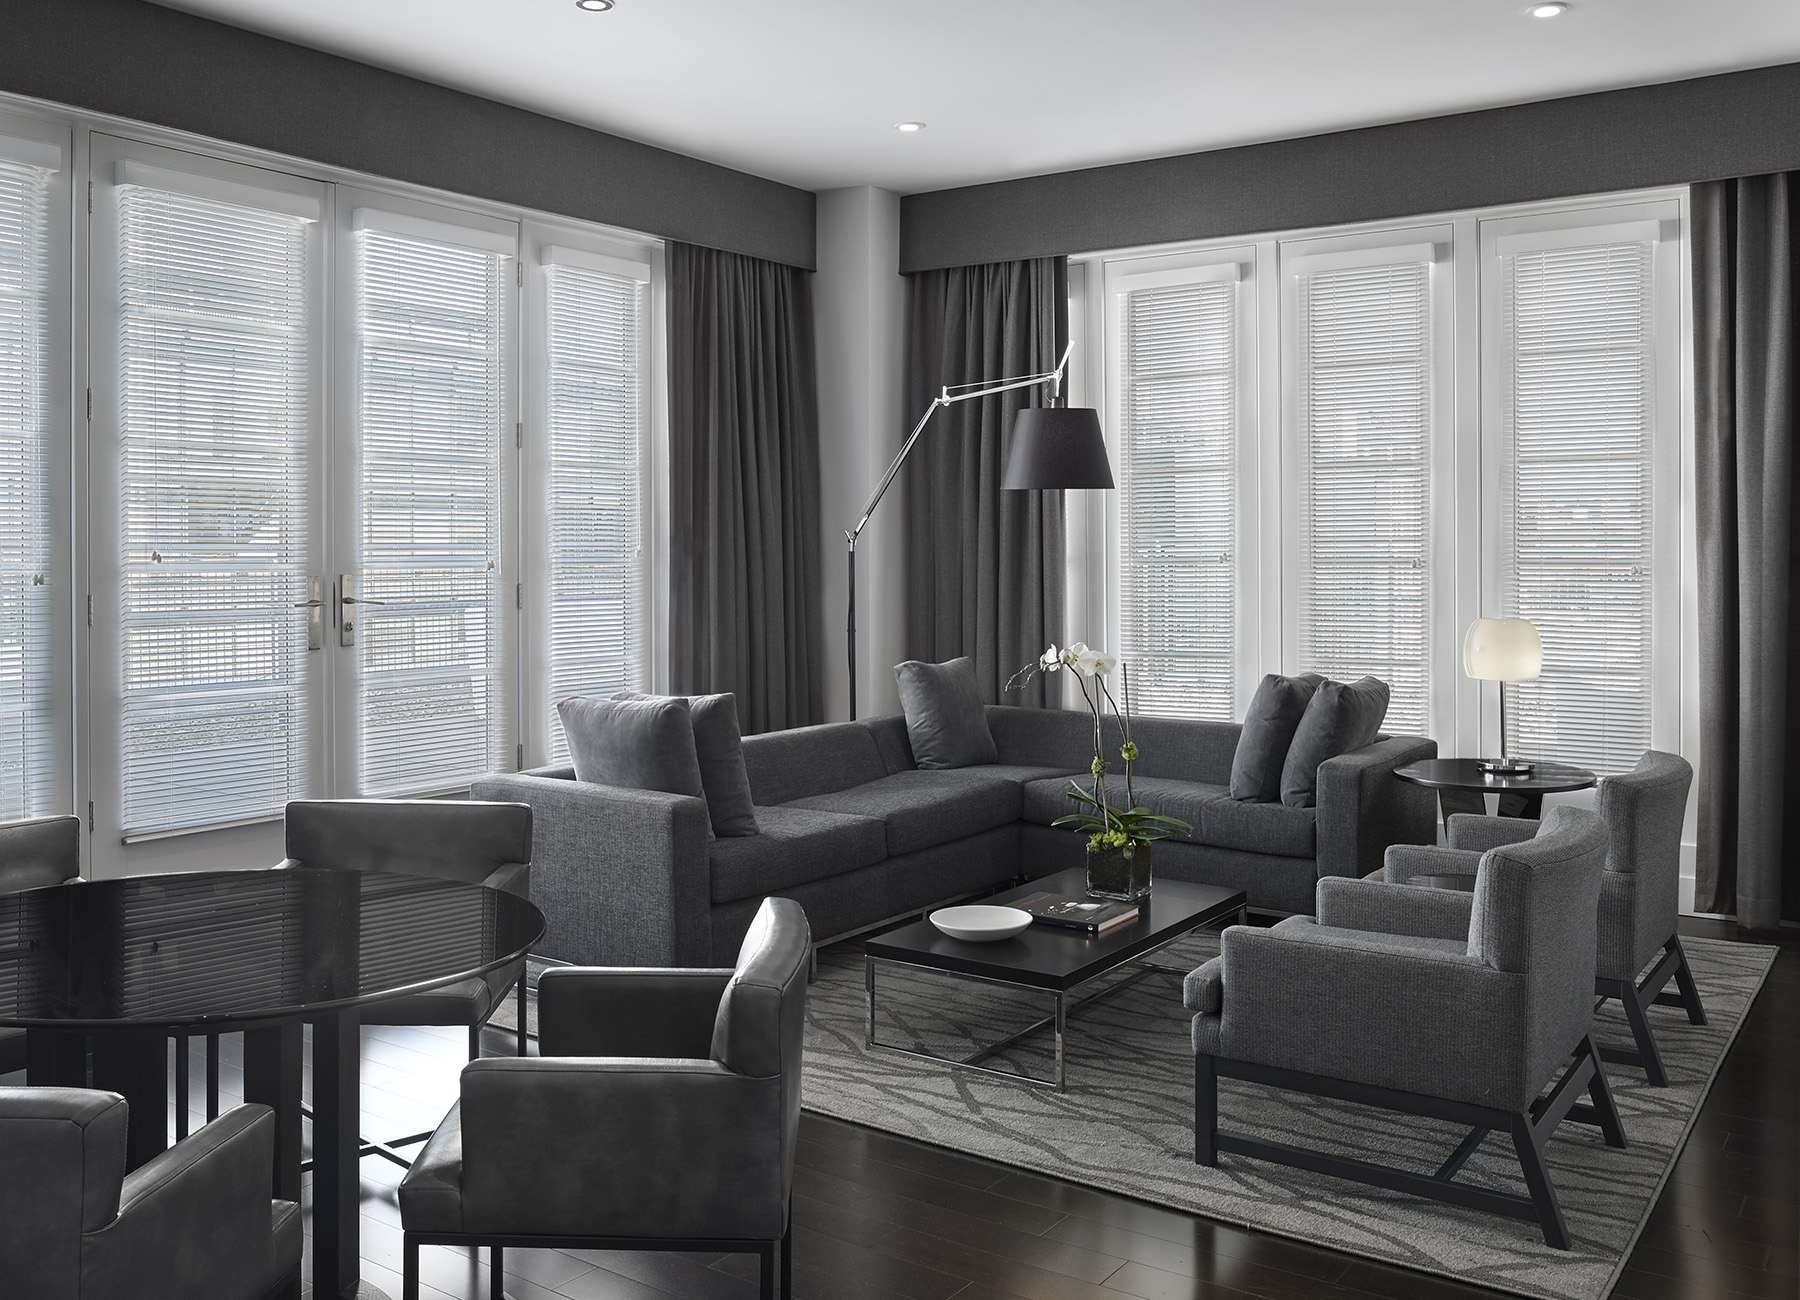 Living room with gray furniture, large windows, and gray curtains